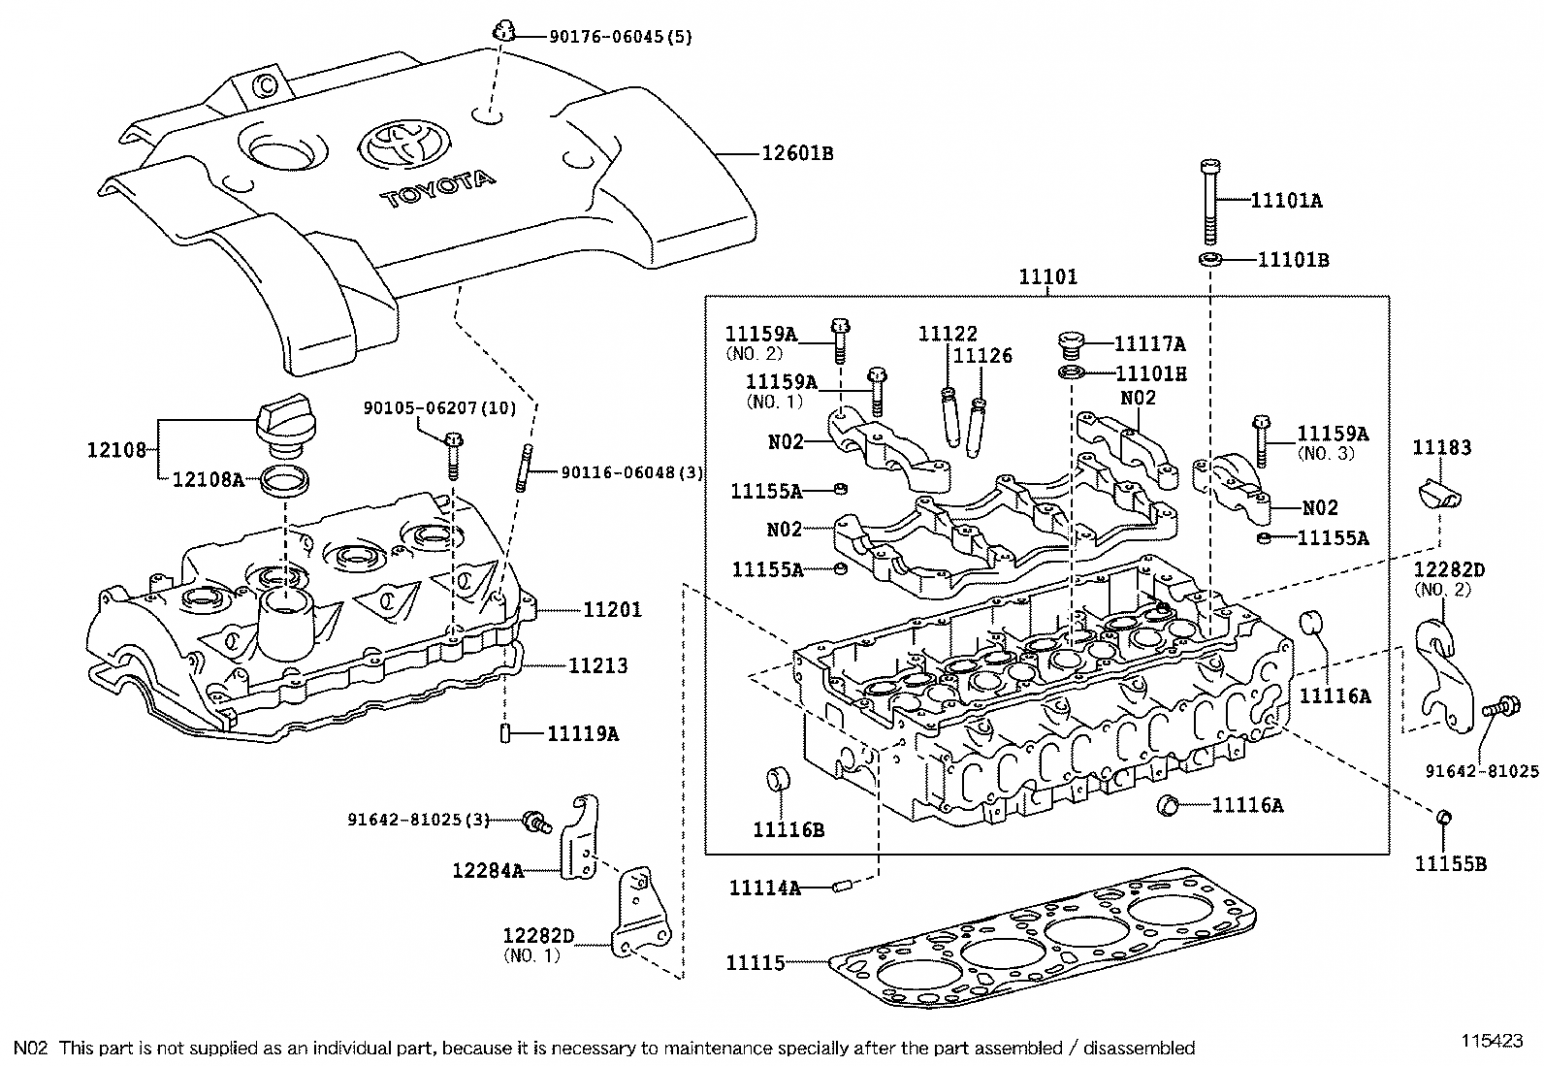 Wiring Diagram Toyota Verso